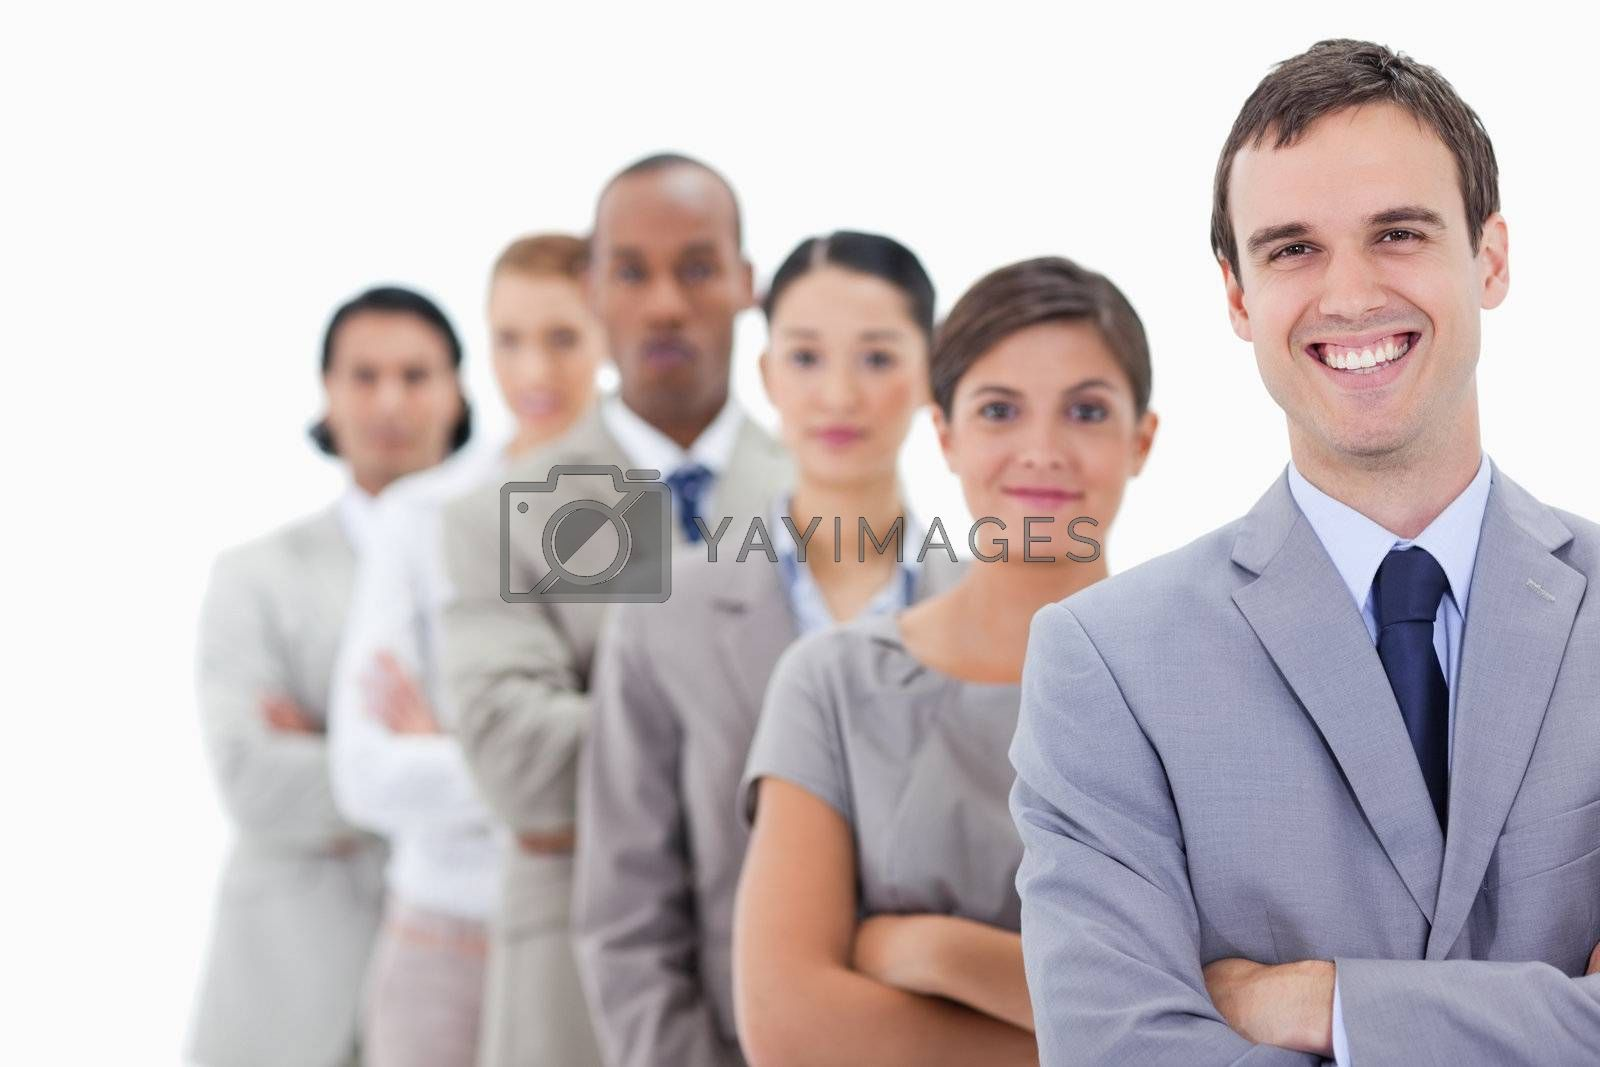 Big close-up of colleagues in a single line looking straight with focus on the first man laughing